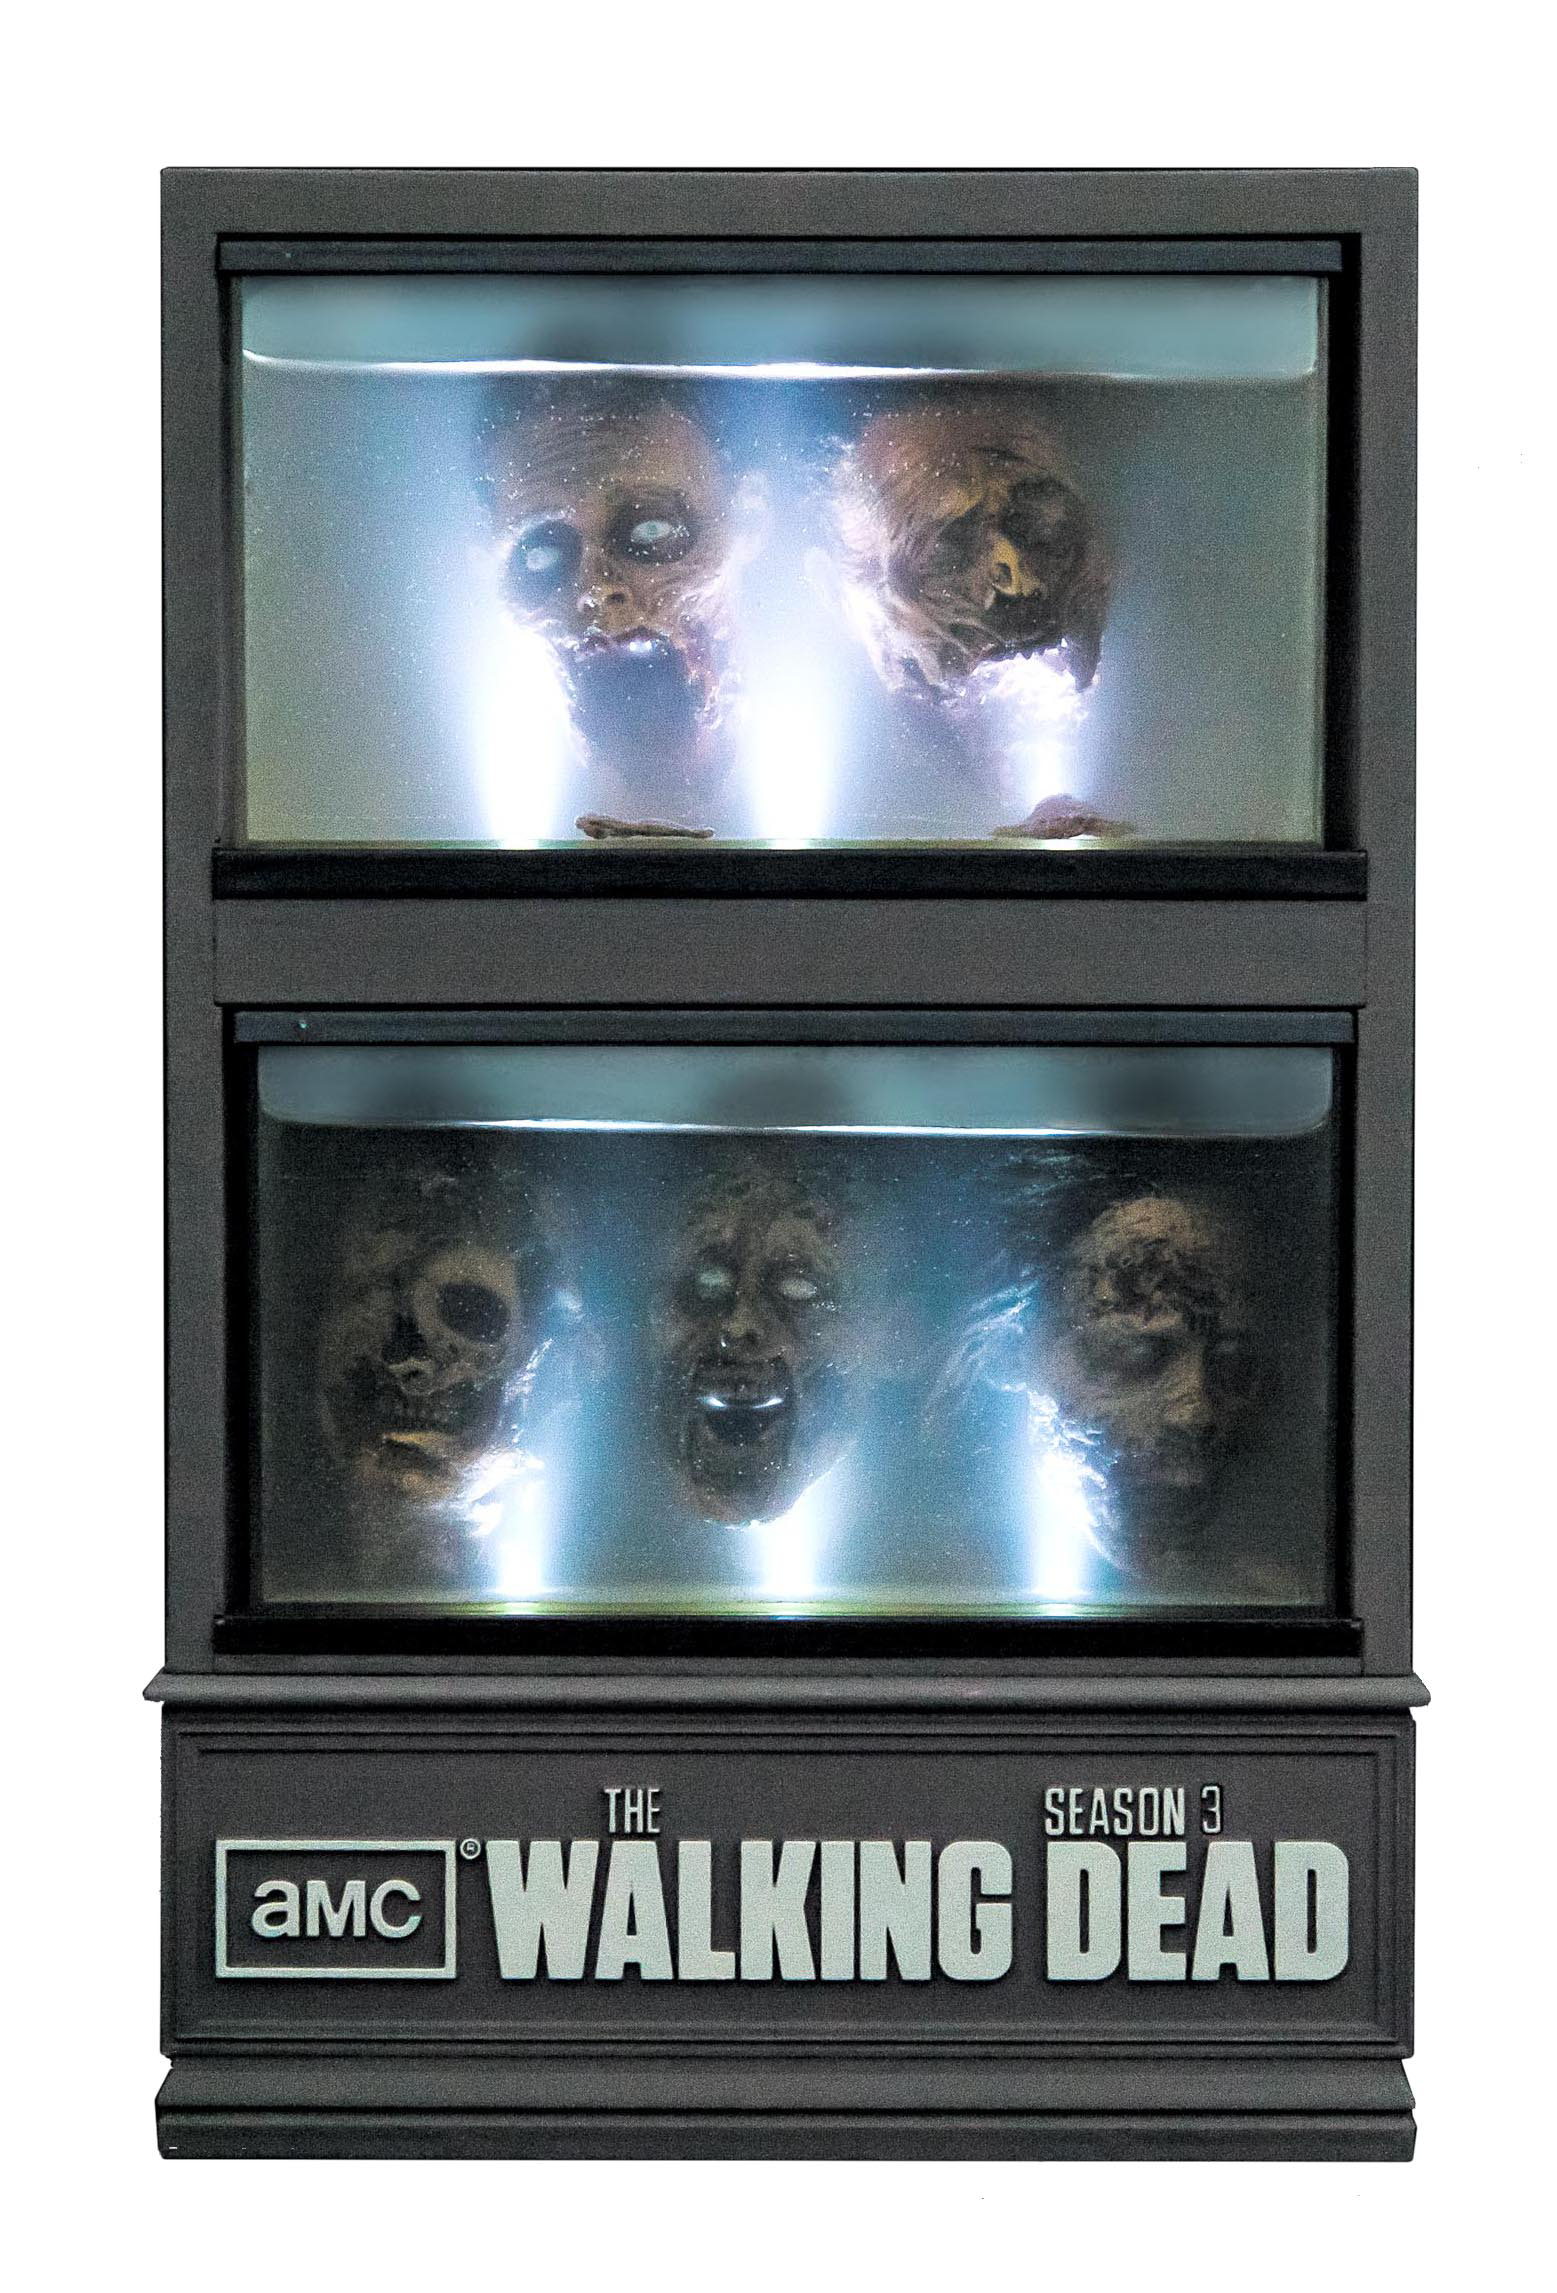 WALKING DEAD BD SEA 03 LTD ED